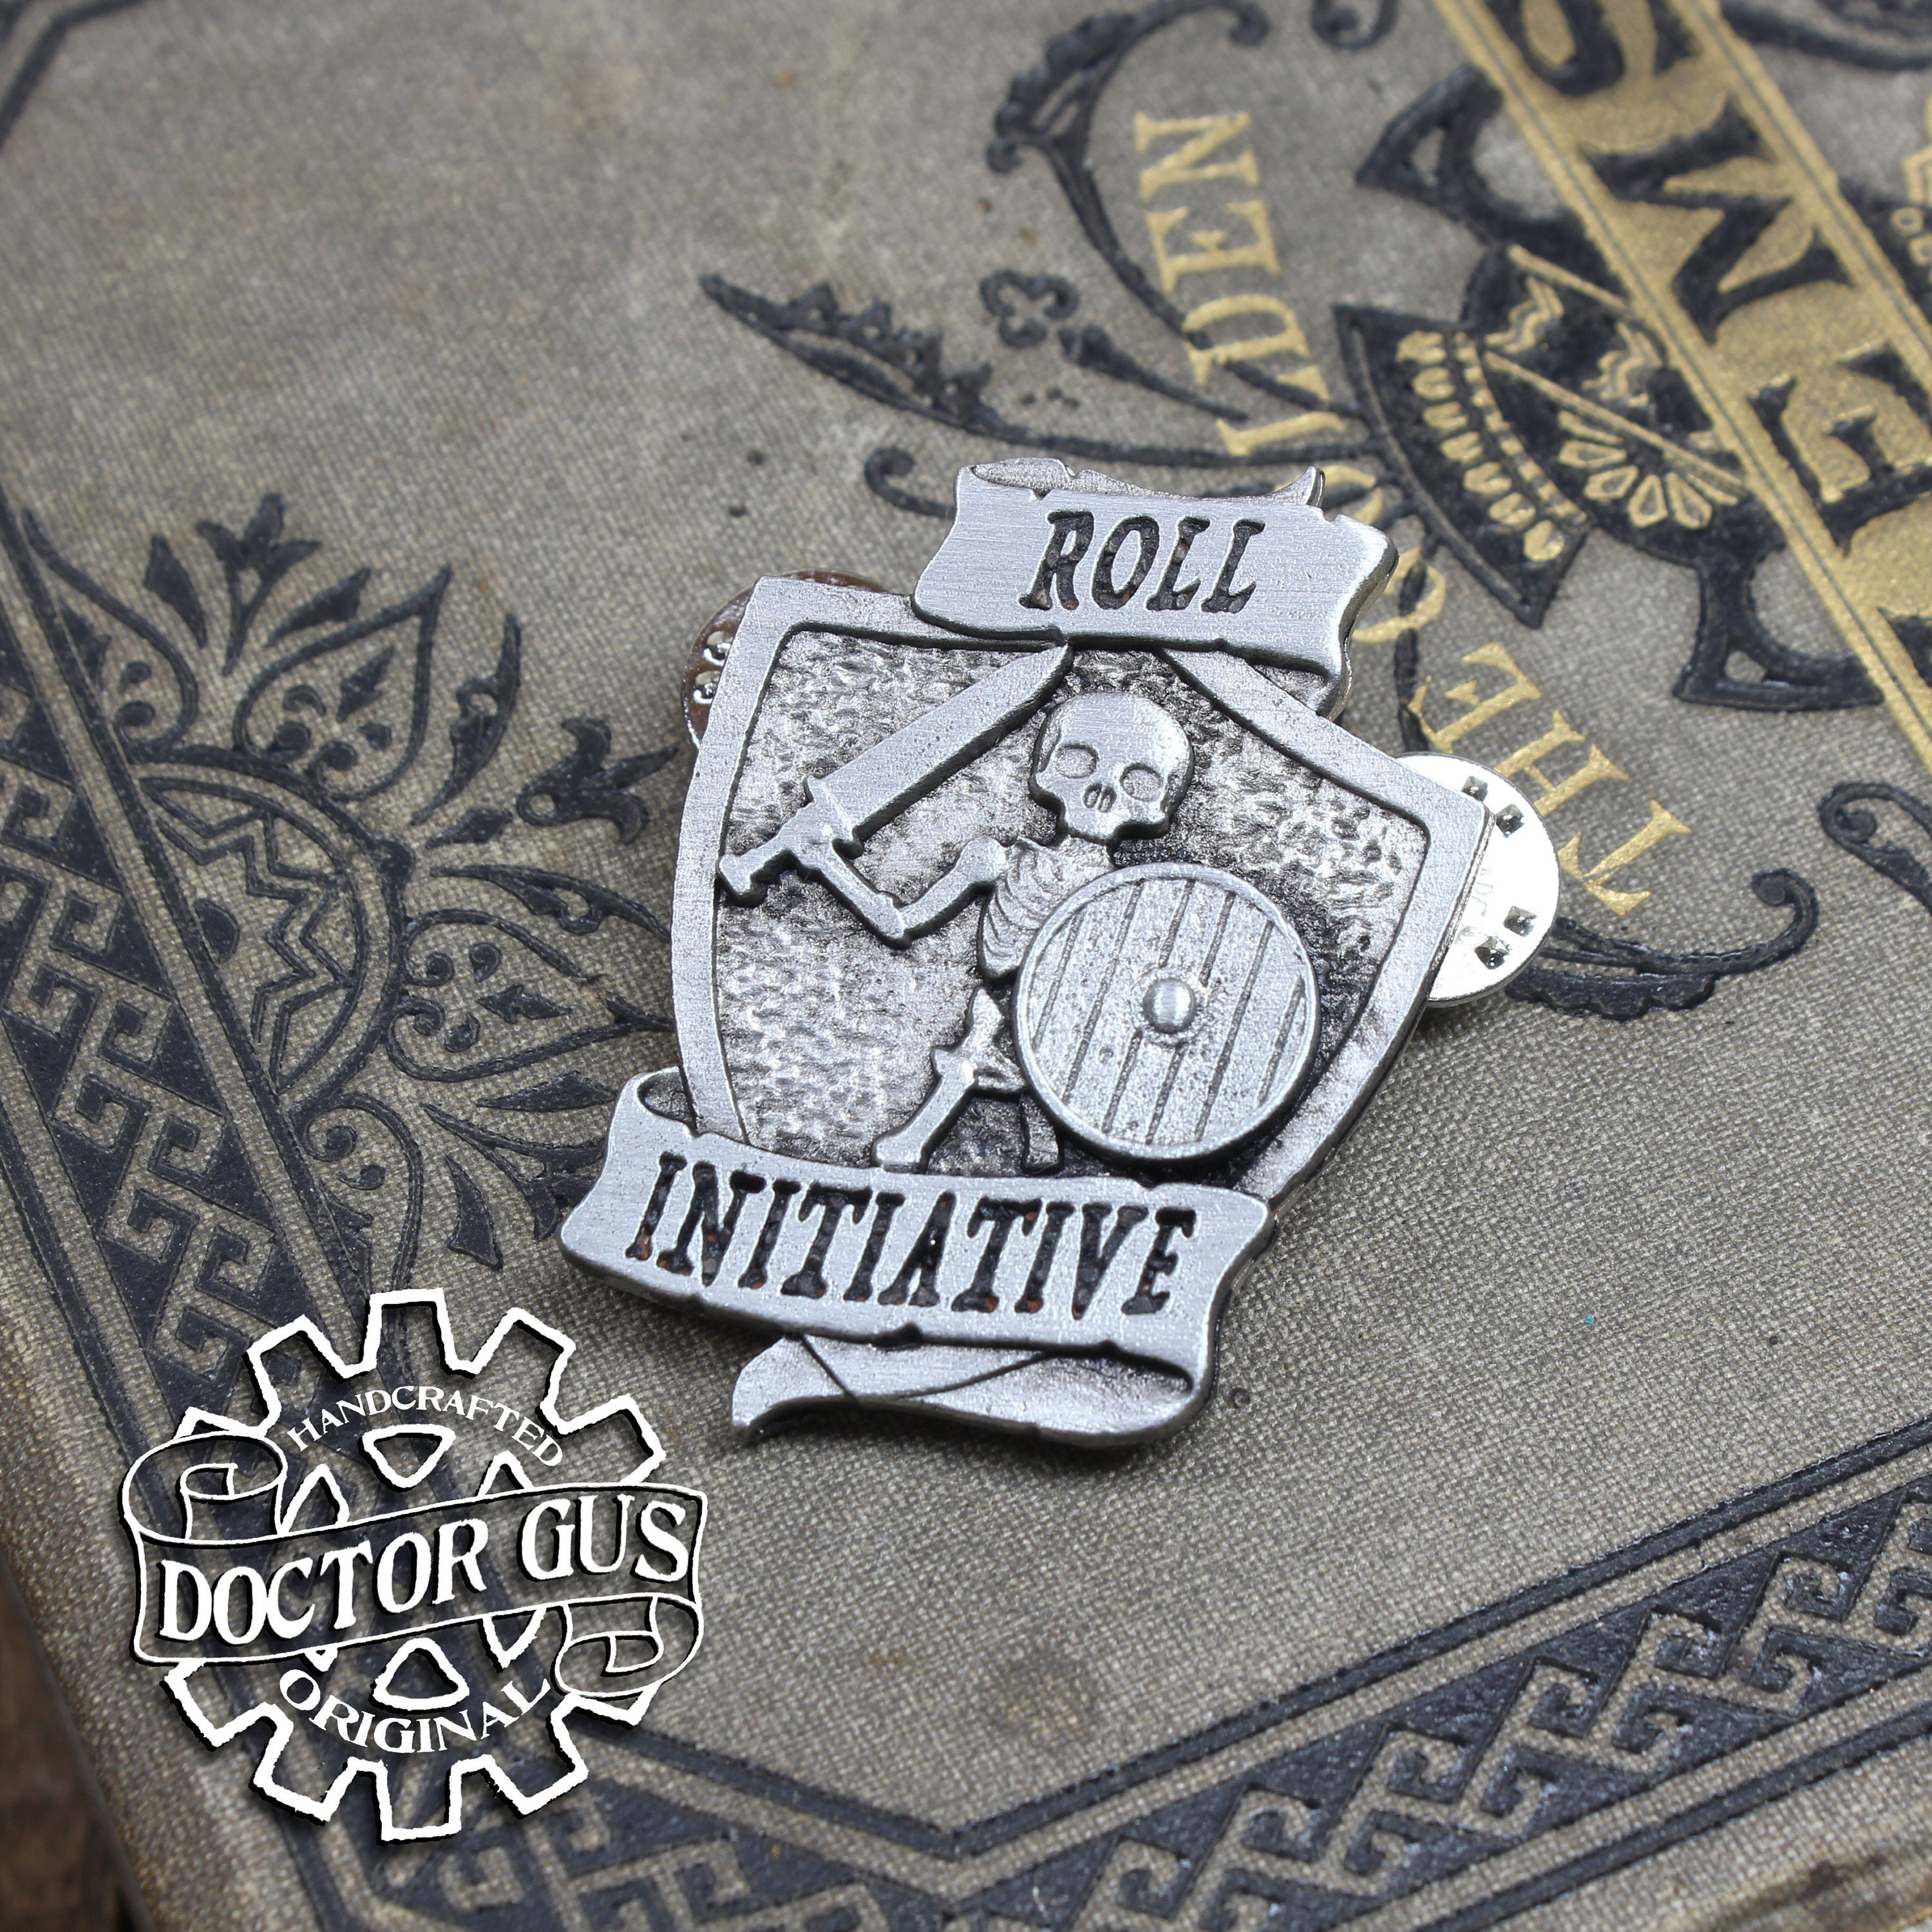 Roll Initiative Badge